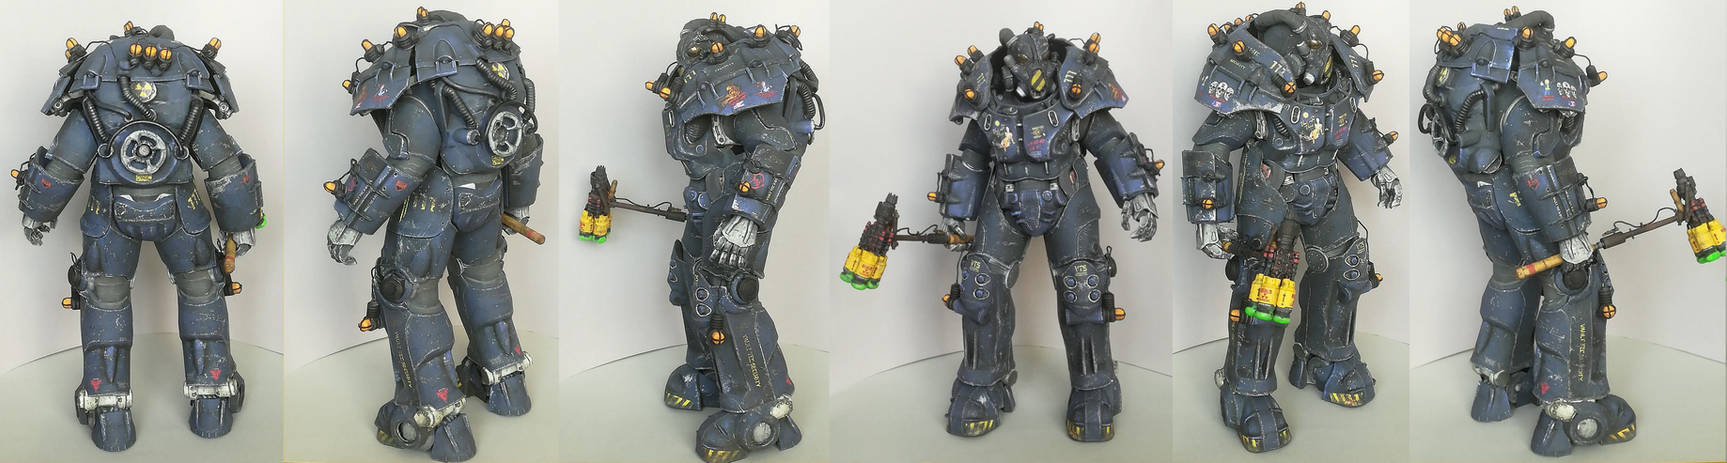 Vault-Tec Security Power Armor Papercraft